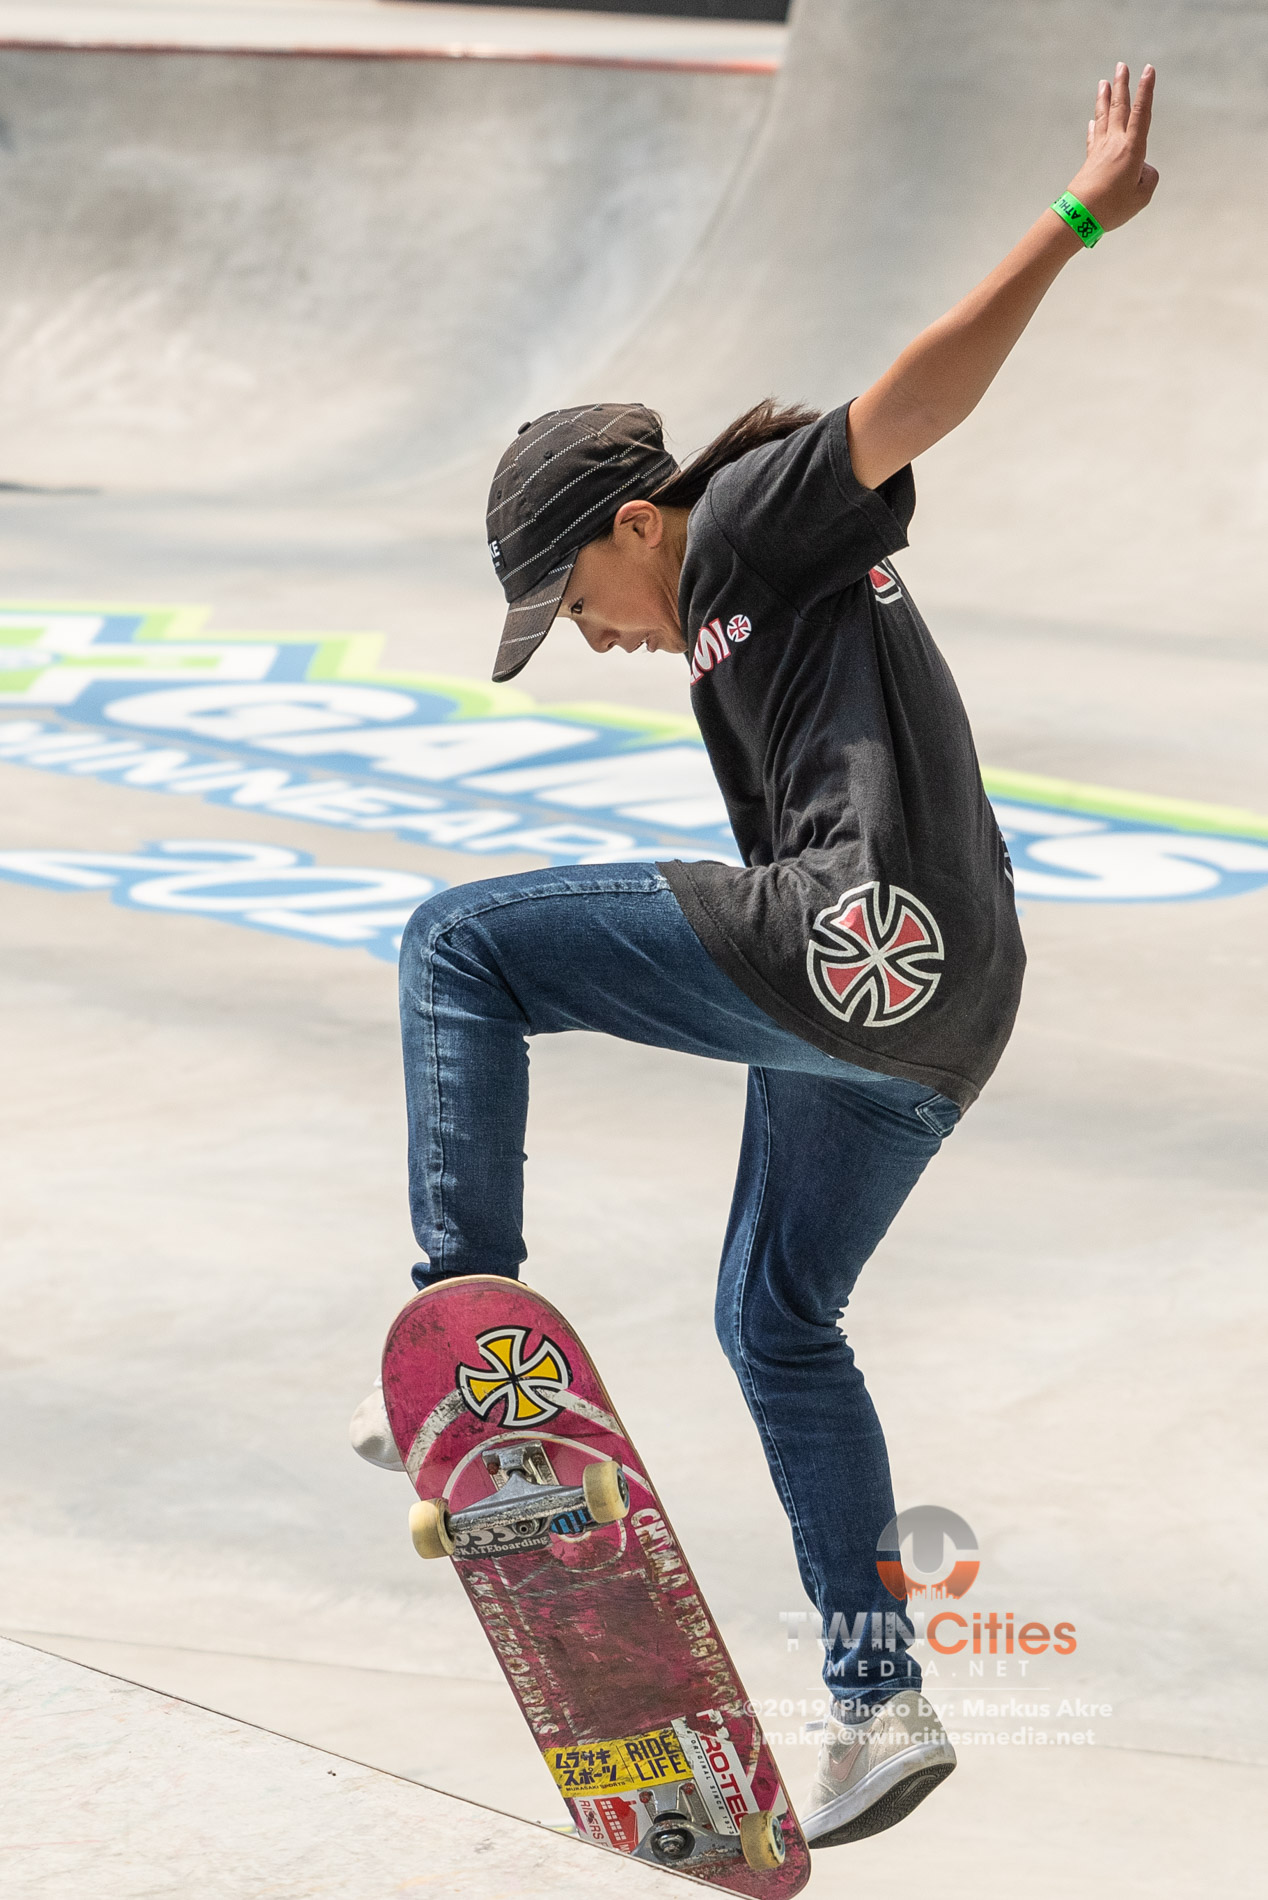 2019-X-Games-Day-4-Women-Skateboard-Street-7